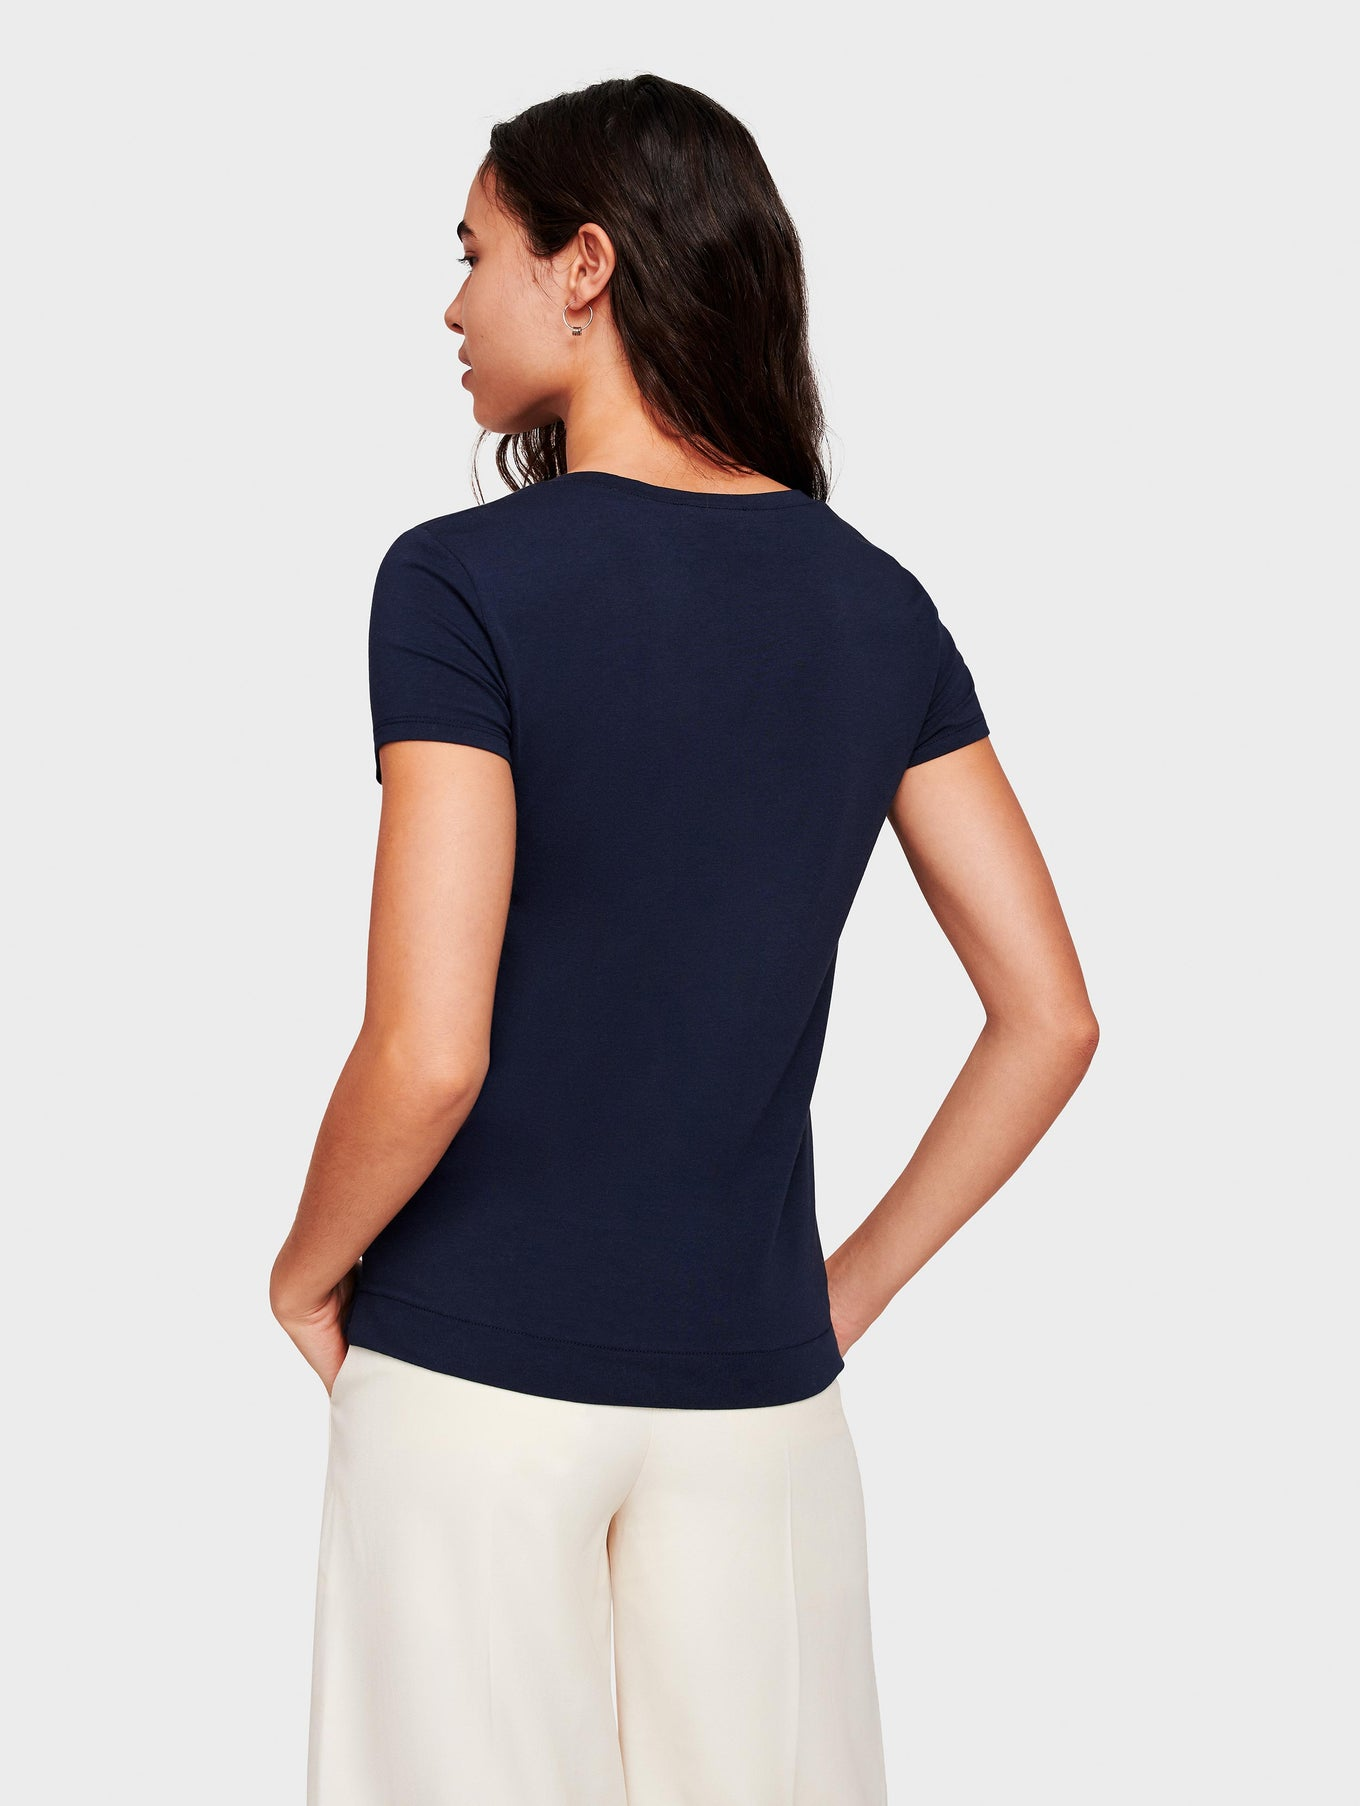 Cotton Modal Short Sleeve Tee - Navy - Image 3